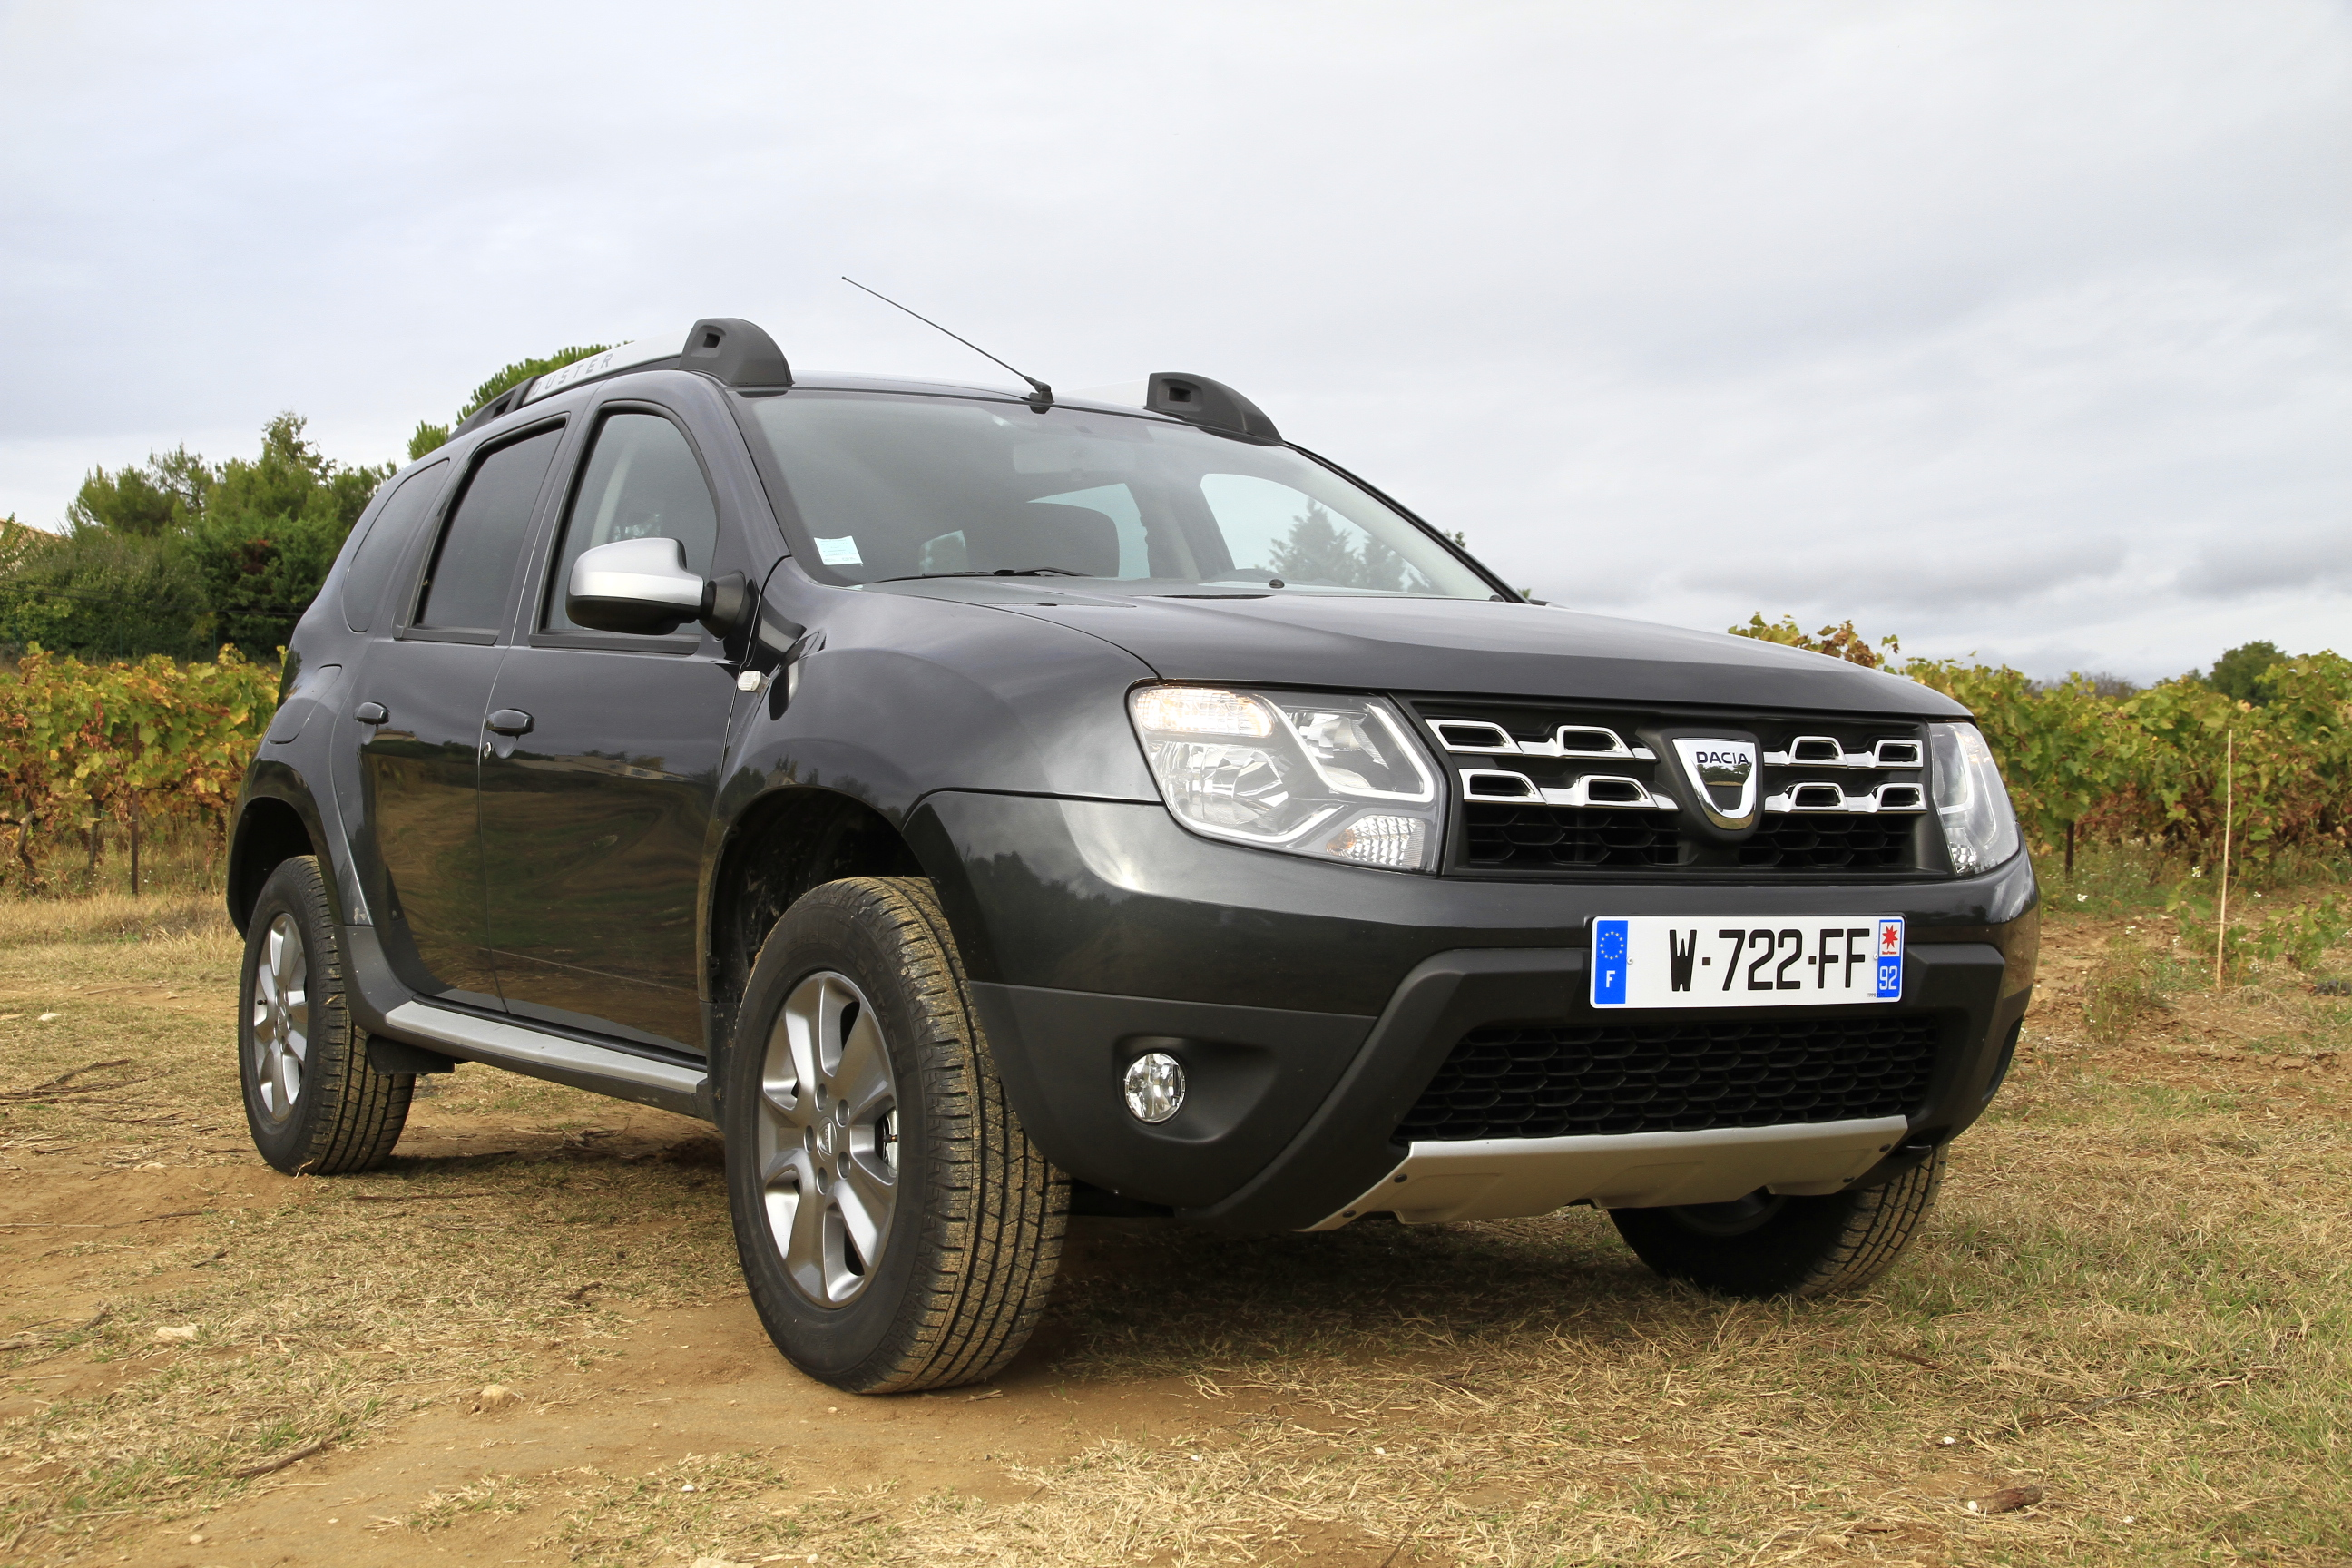 dacia duster prix 4x4 dacia duster prix photo de voiture et automobile prix dacia duster 4x4. Black Bedroom Furniture Sets. Home Design Ideas